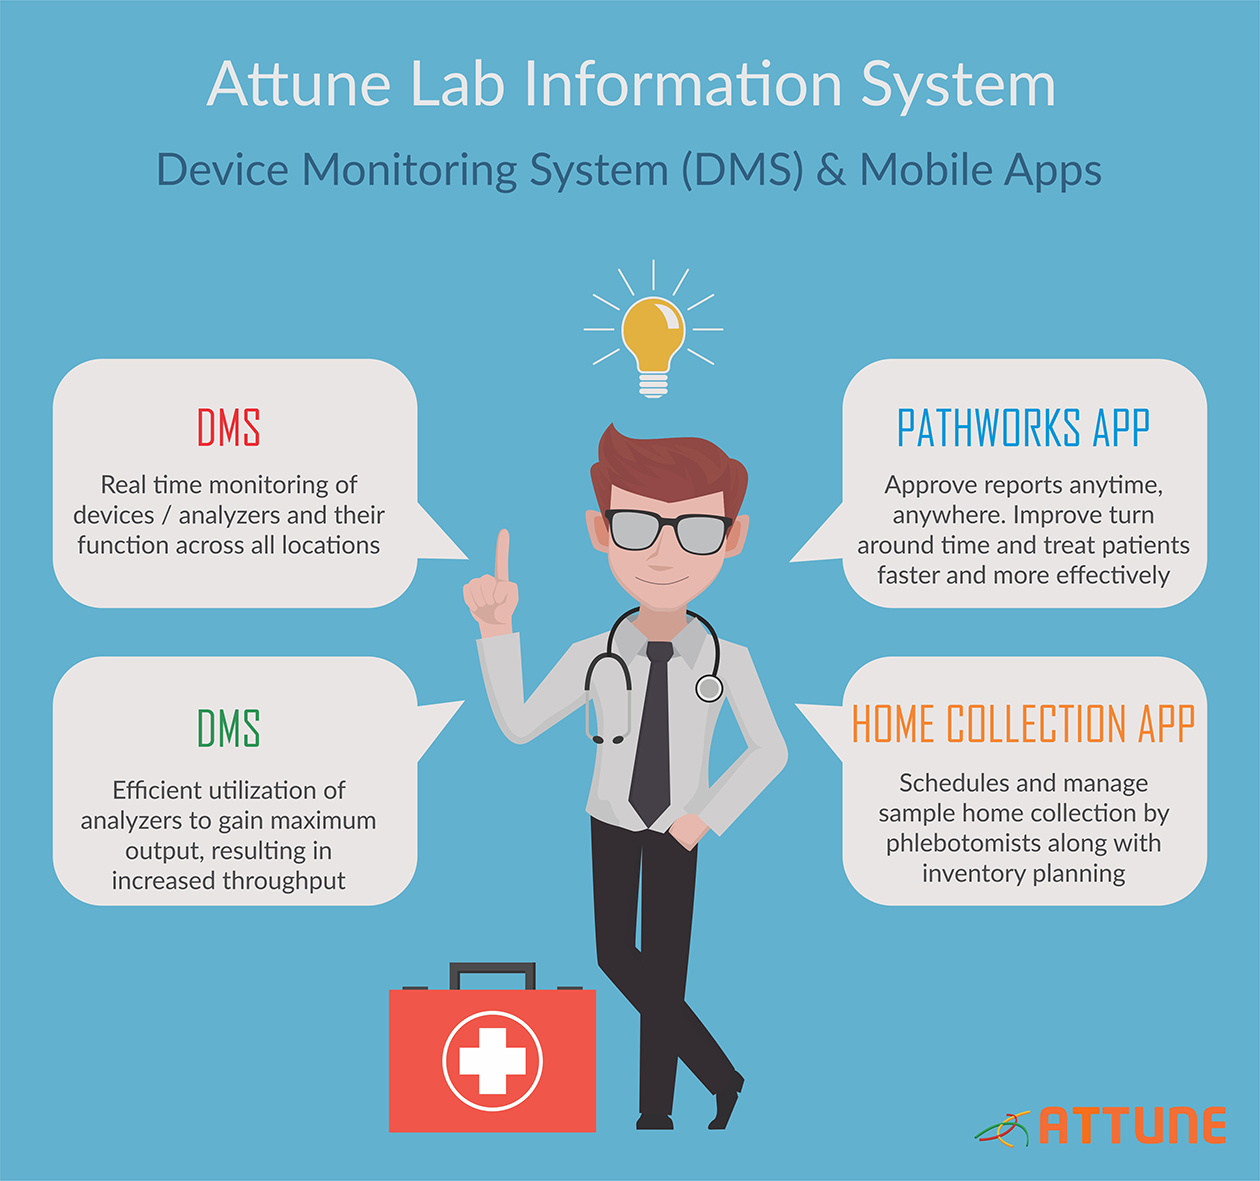 Attune LIS CMS & Mobile Infographic